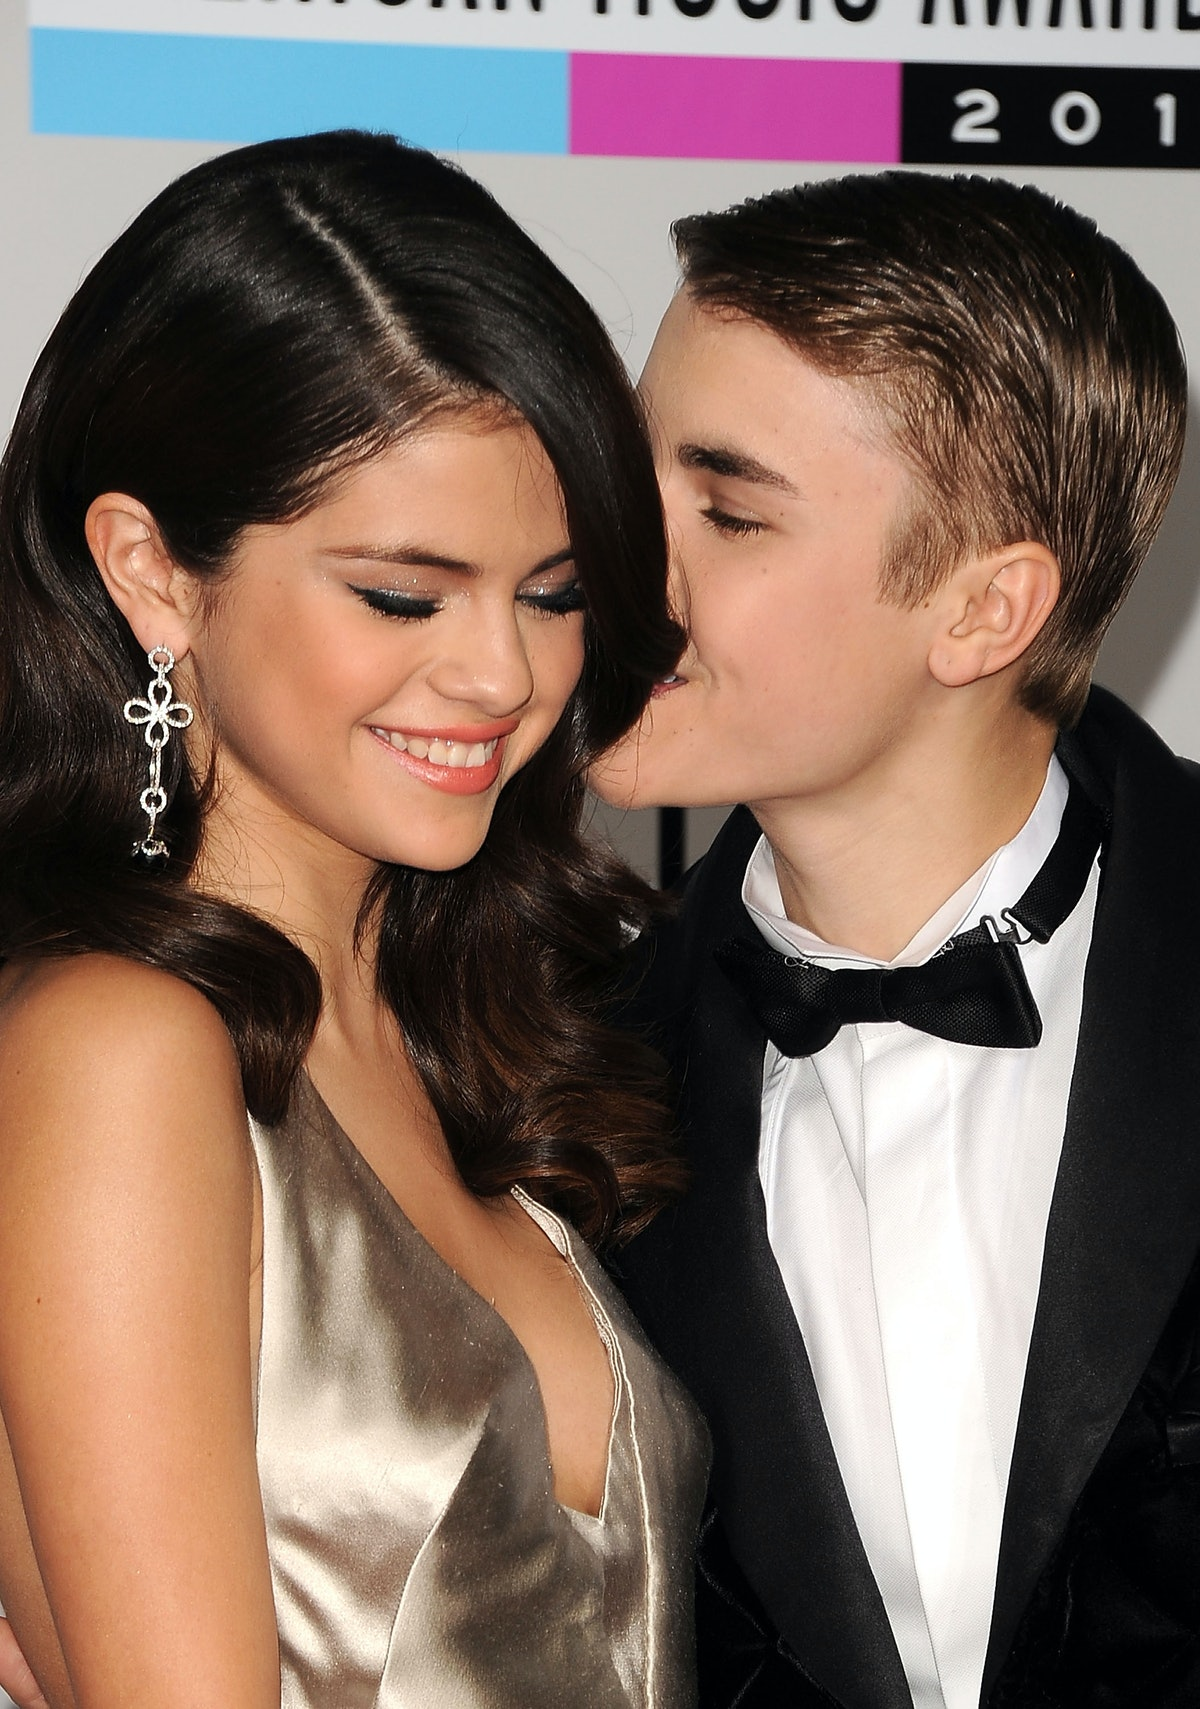 when did justin bieber started dating selena gomez #selenaisfreeparty has been trending on twitter ever since justin bieber proposed to hailey baldwin justin bieber and selena gomez dated from 2014-2016 before he started dating baldwin and before she started dating the weeknd.